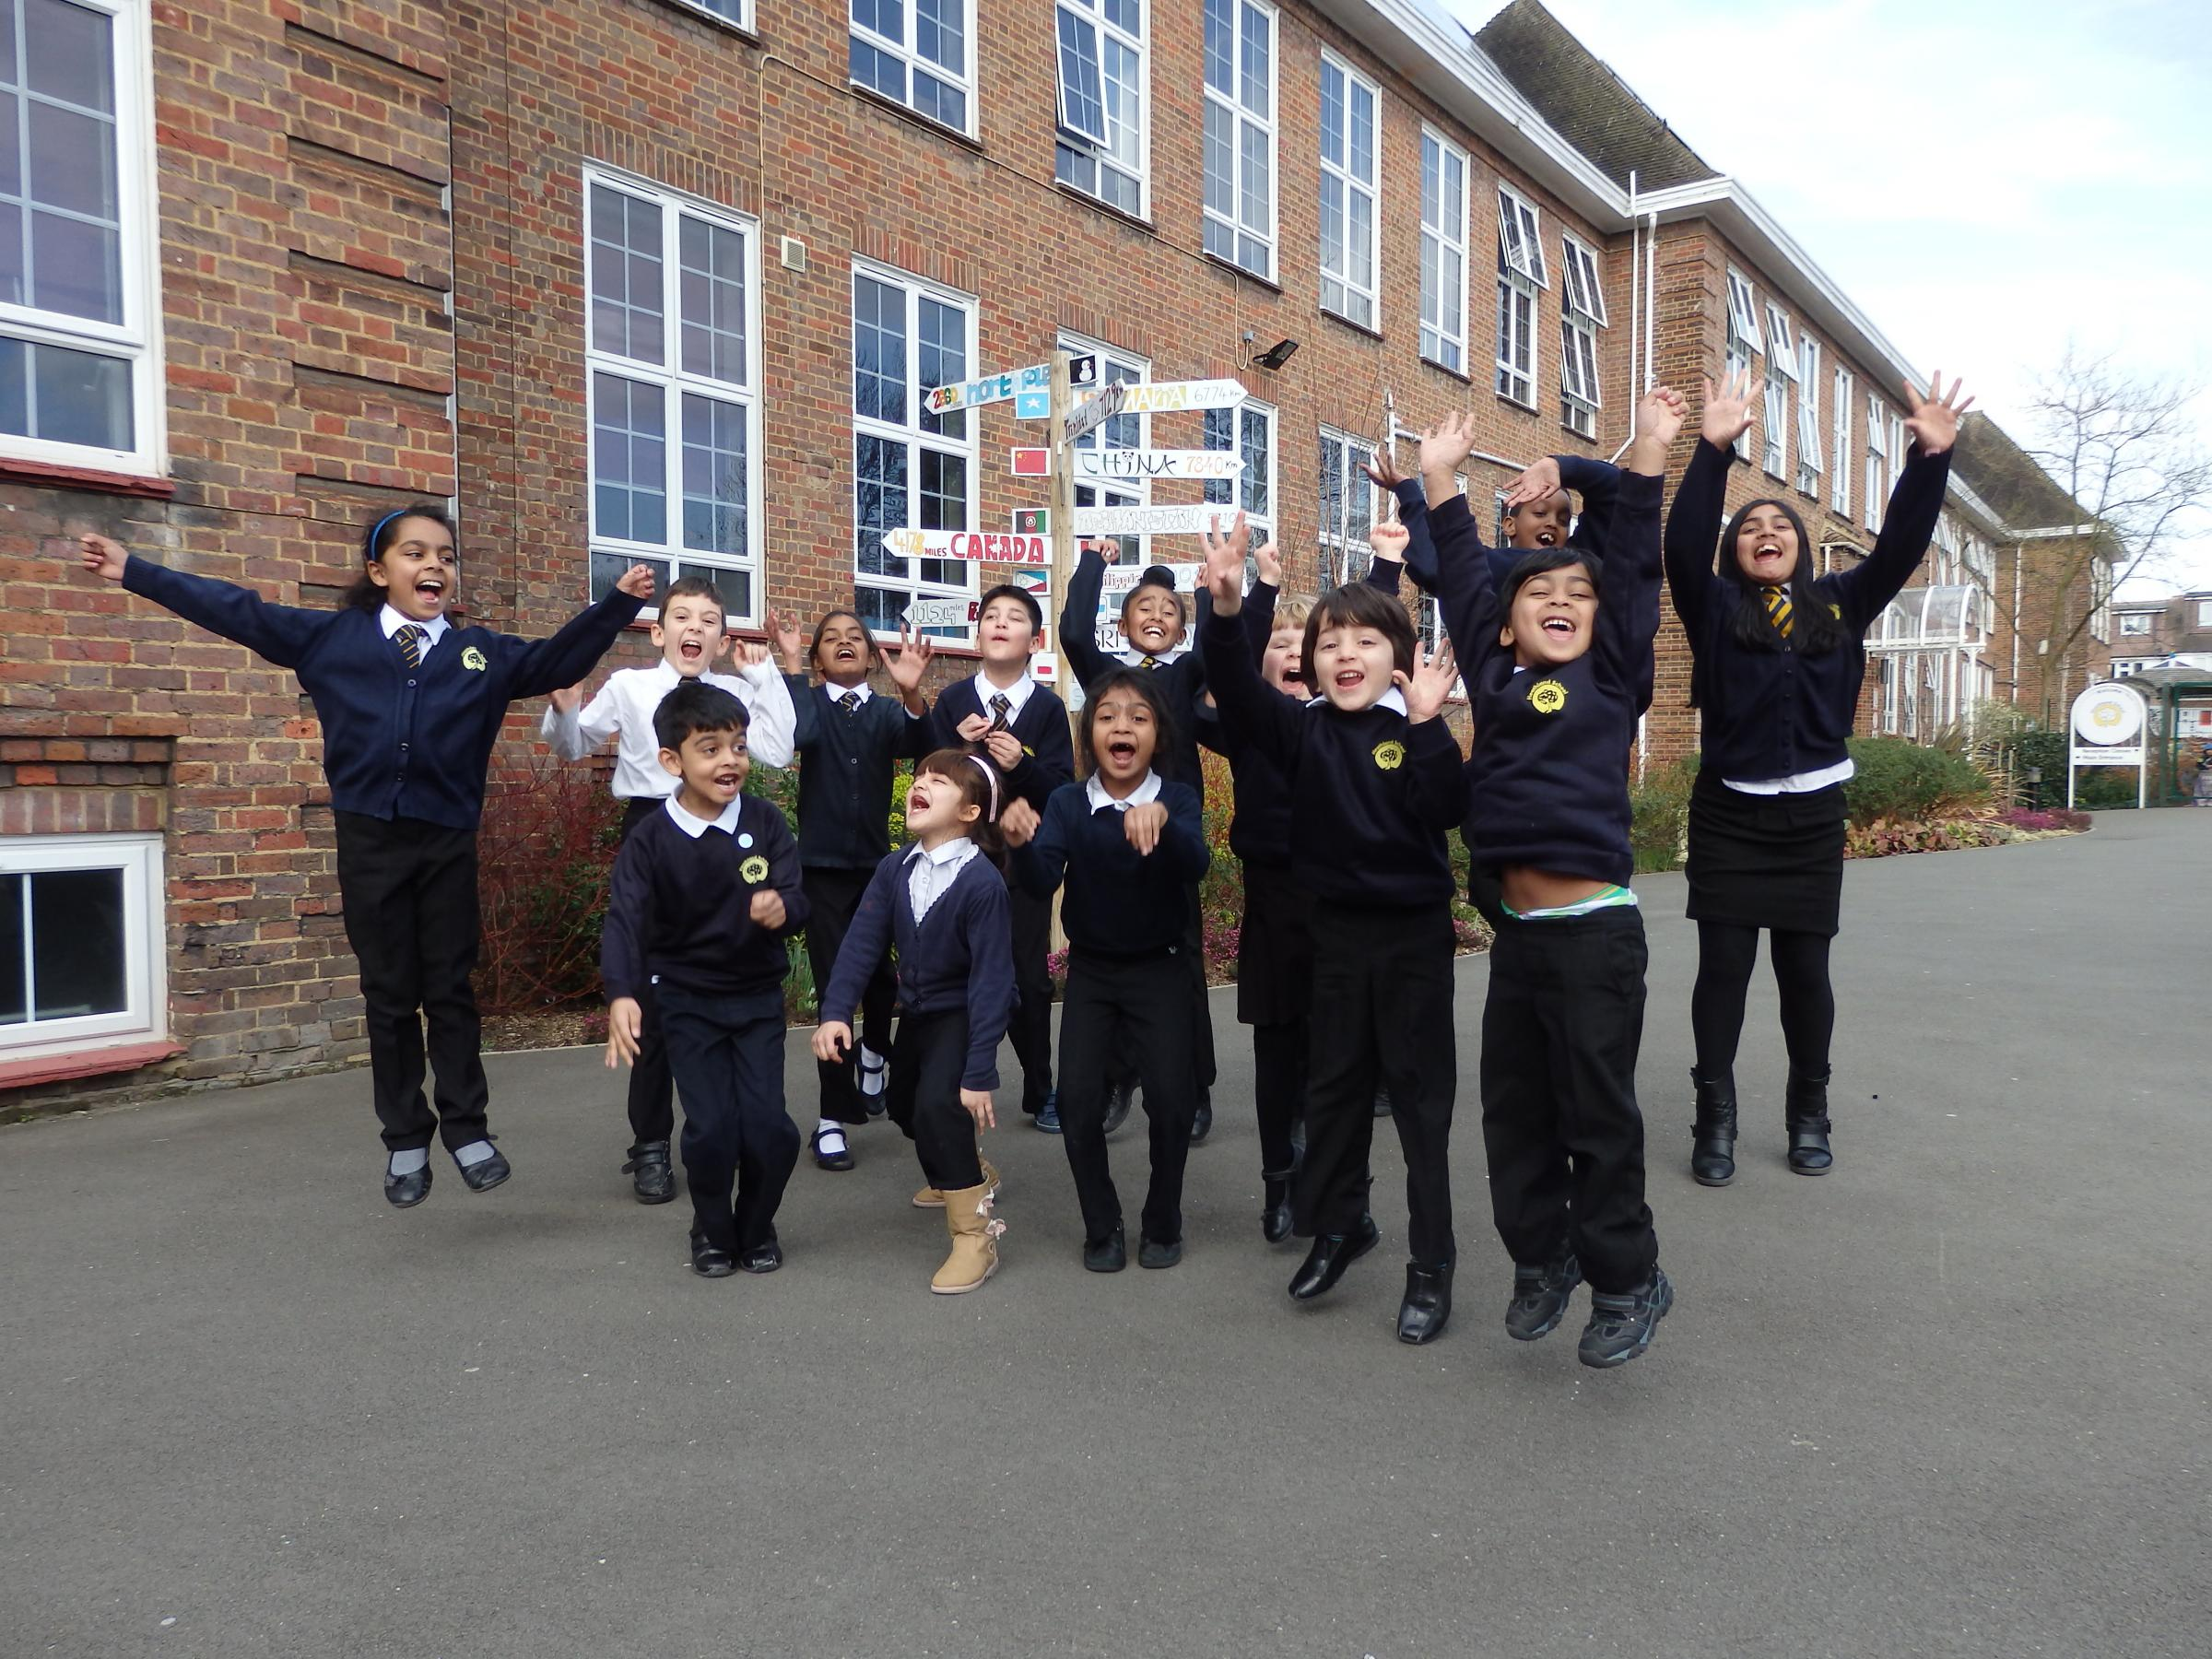 Children at Heathland School in South Harrow celebrate an 'outstanding' Ofsted inspection